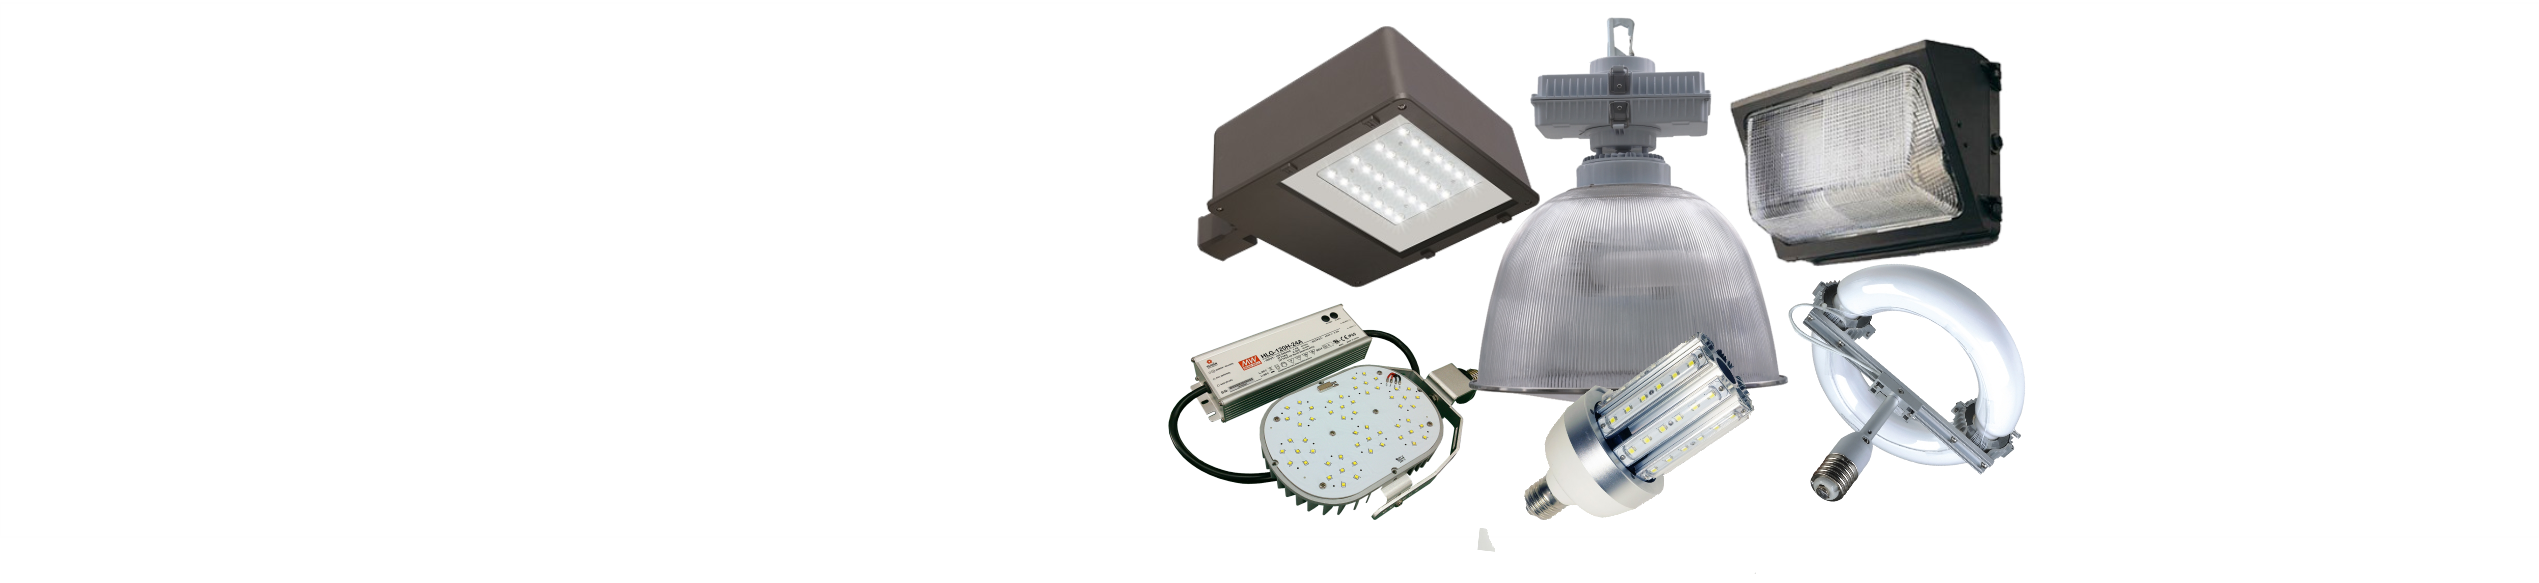 Energy_Efficient_LED_Induction_HID_Lamps_Bulbs_Lighting